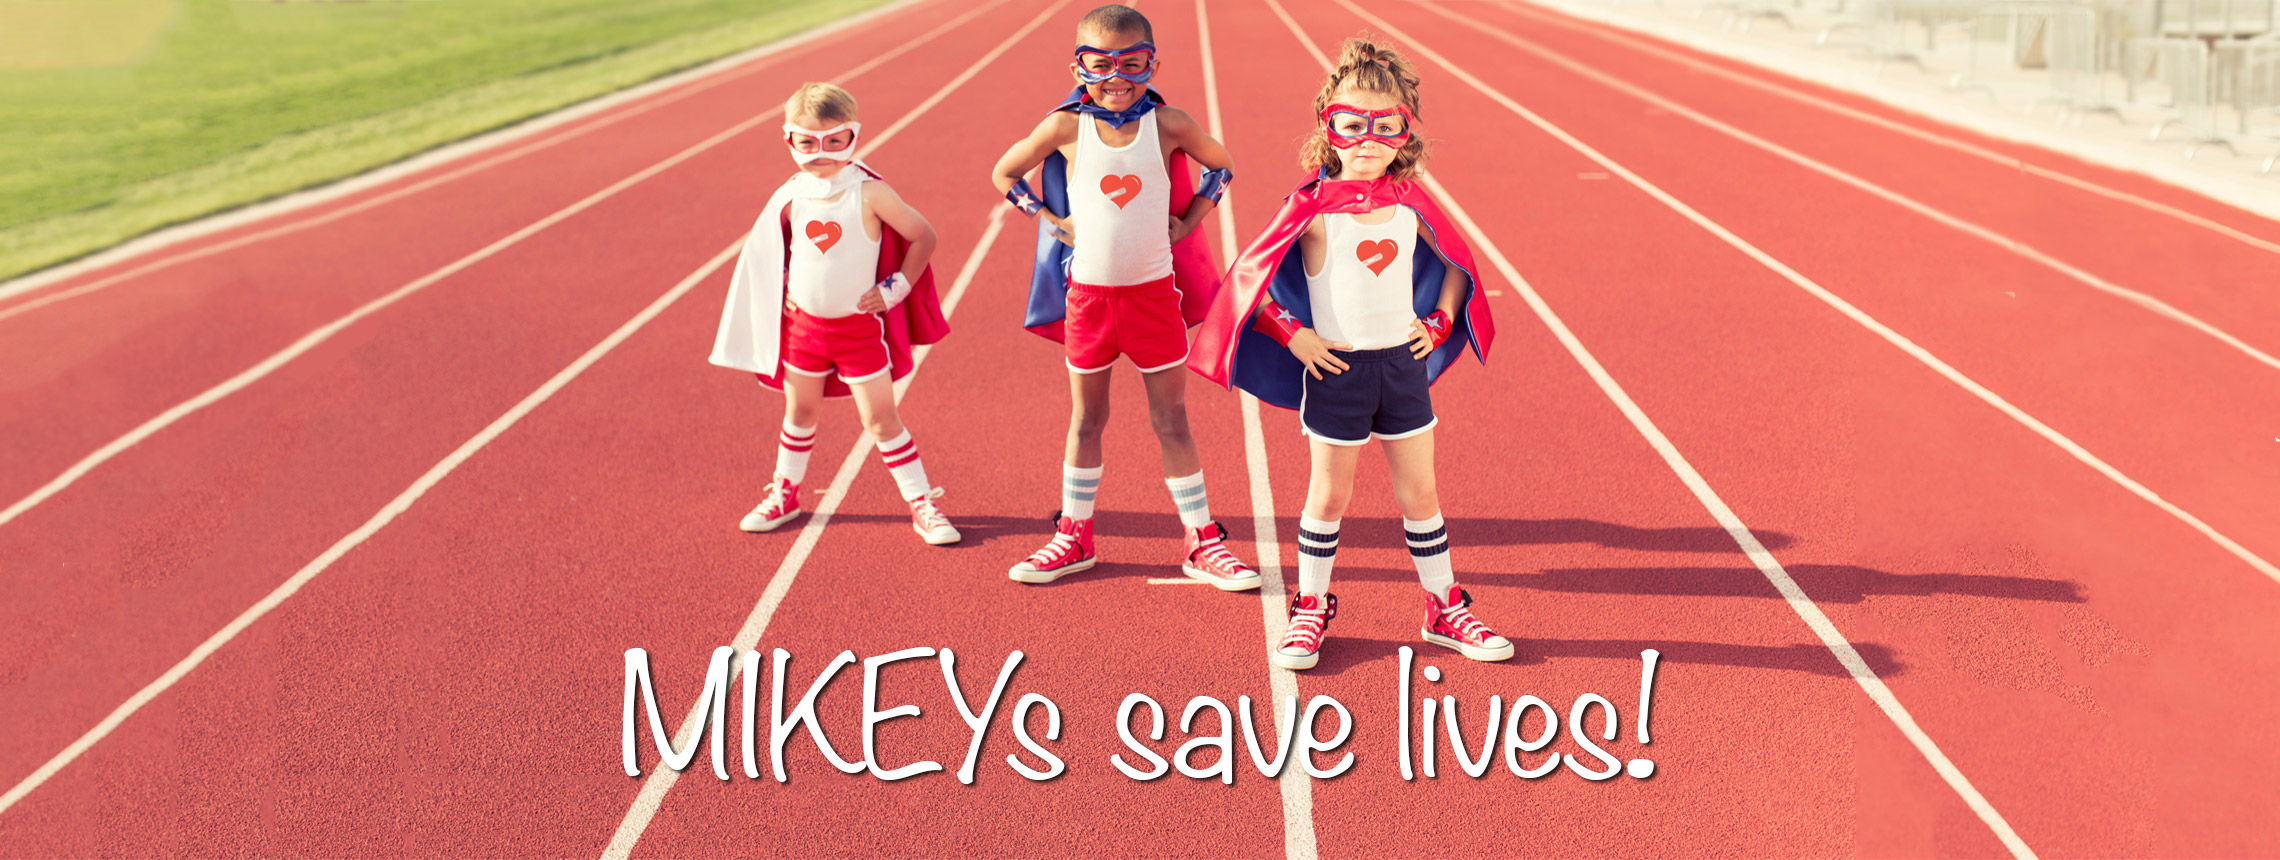 The Mikey Network Saves Lives